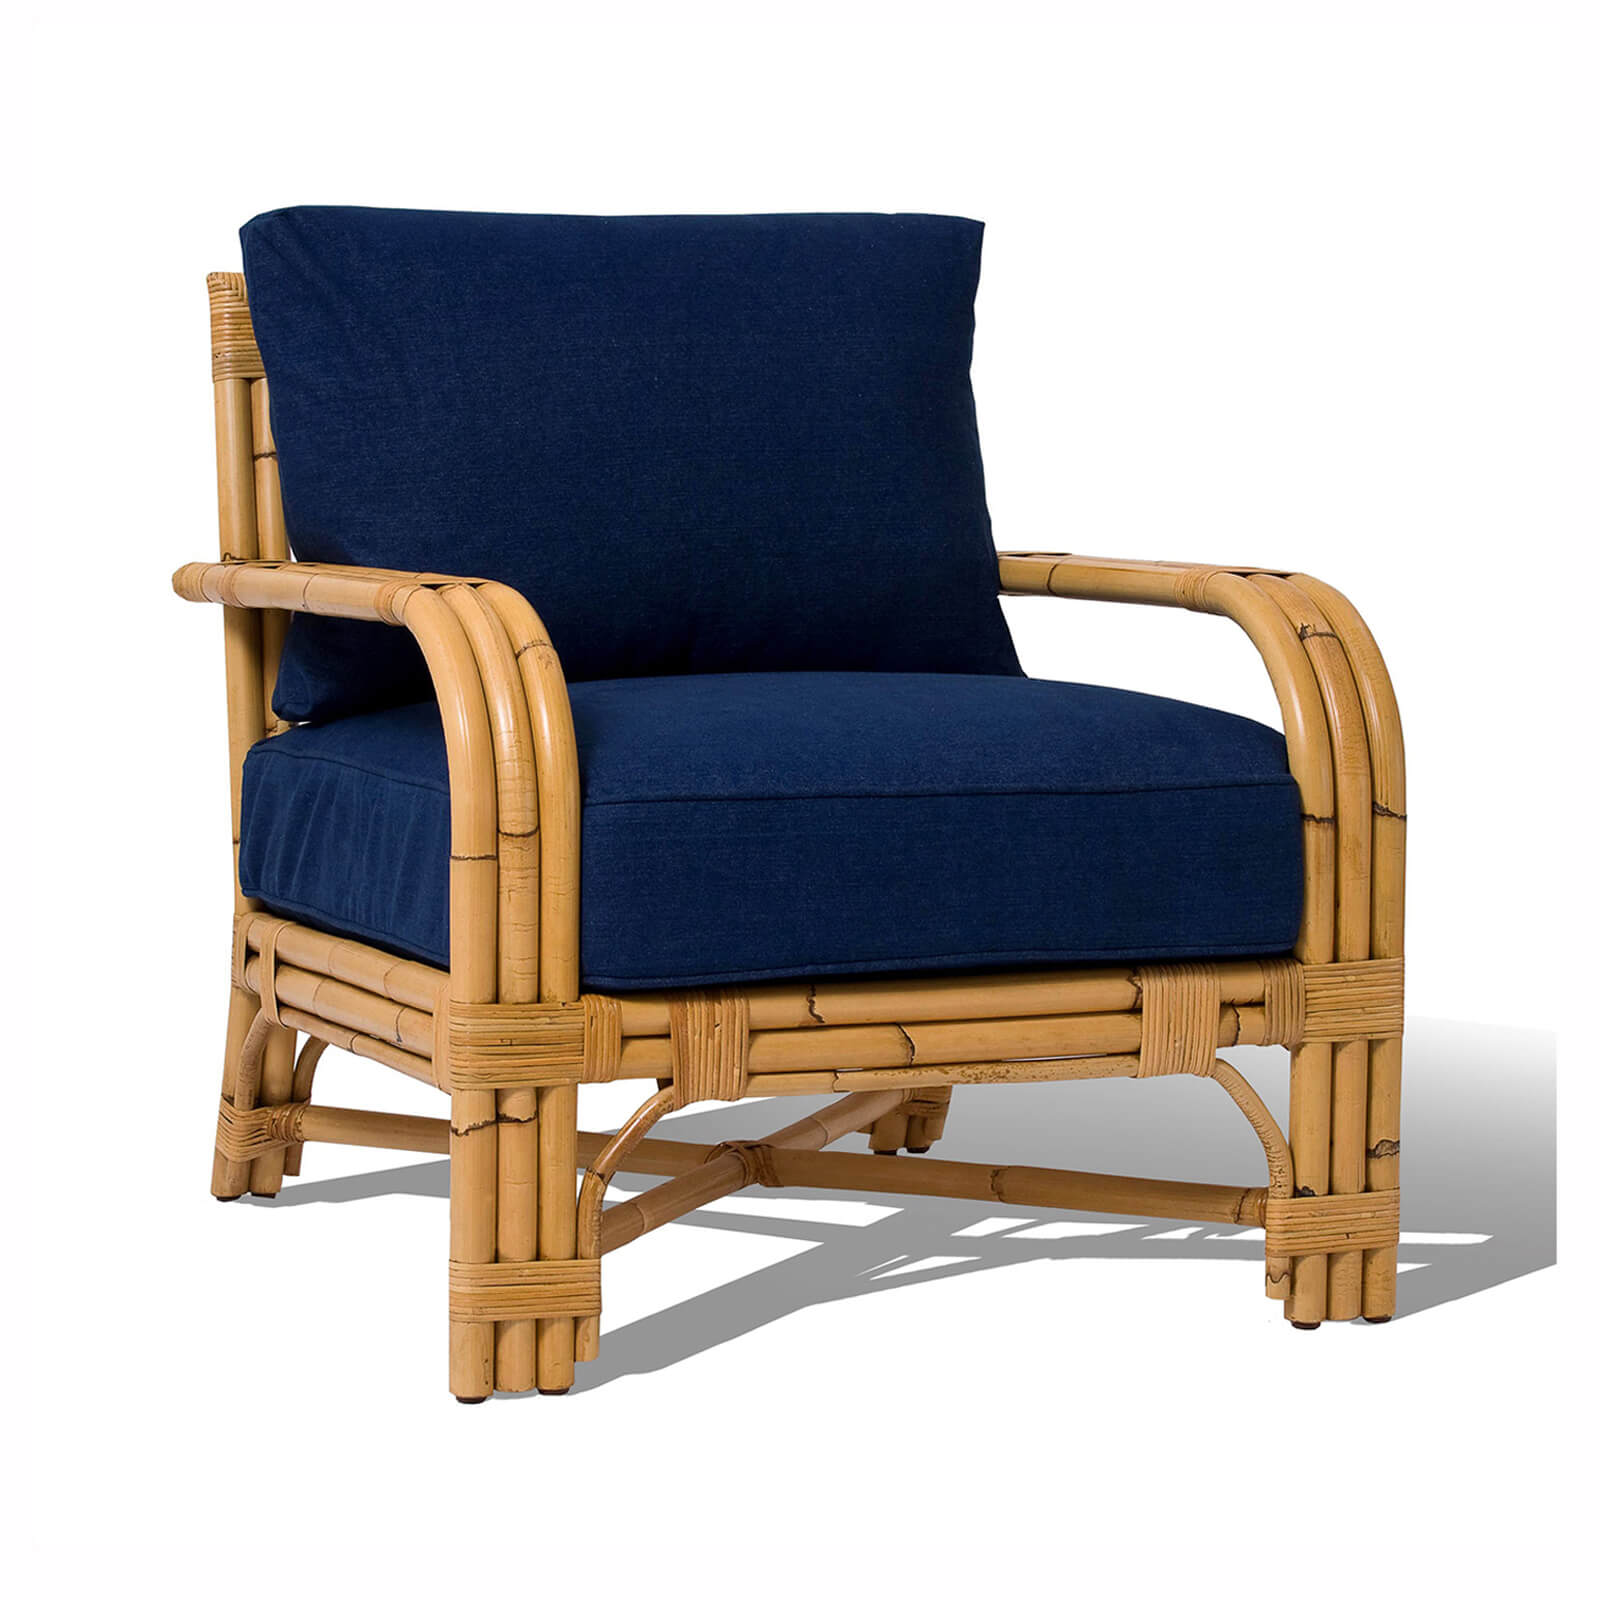 JAMAICA CLUB CHAIR 10 - STUART MEMBERY HOME COLLECTION